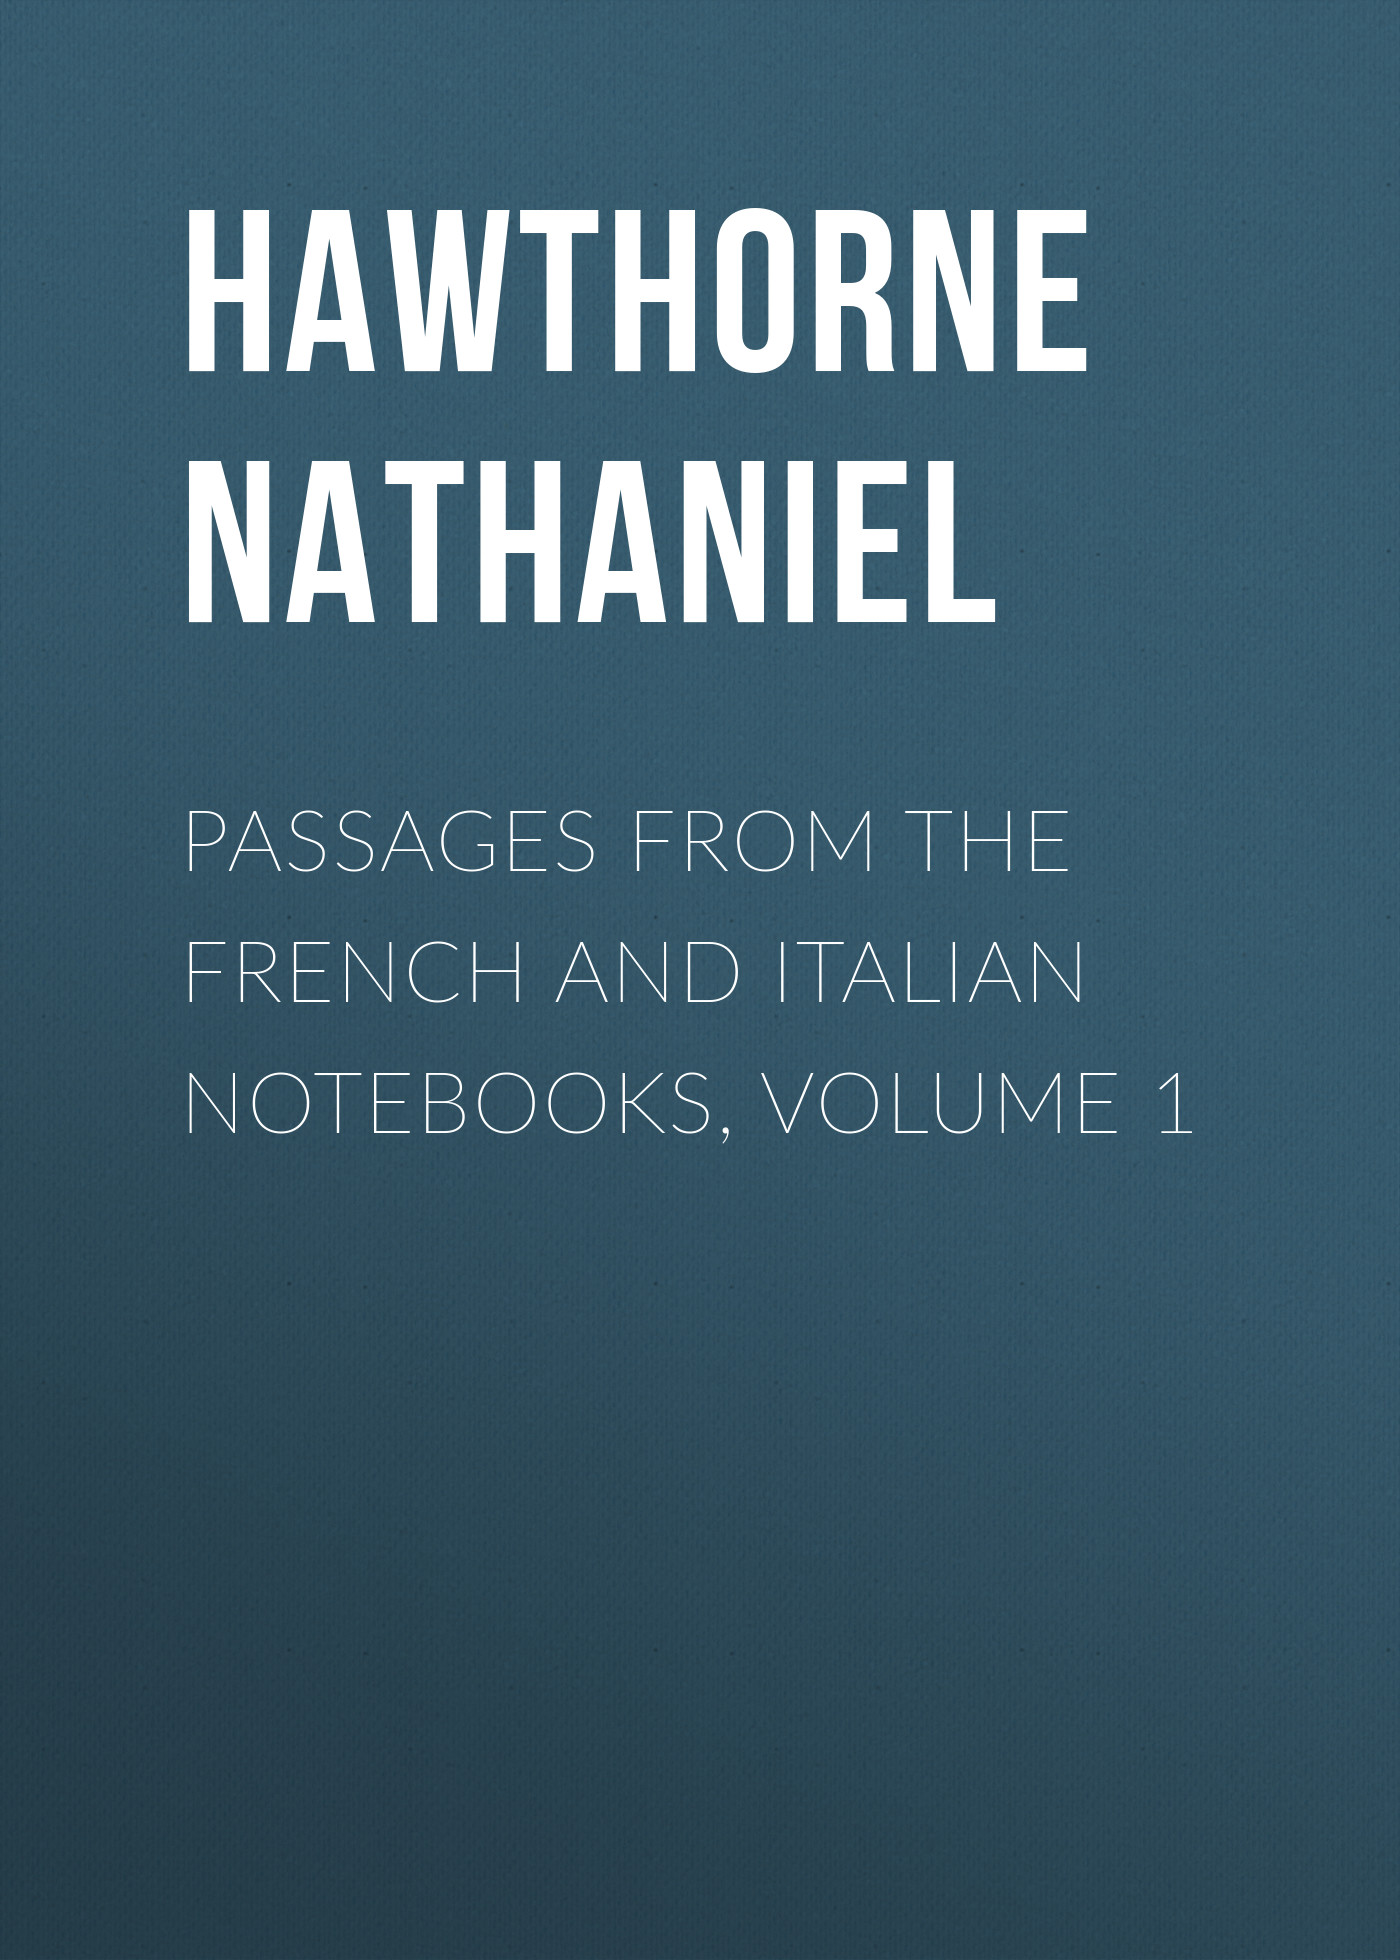 Hawthorne Nathaniel Passages from the French and Italian Notebooks, Volume 1 dk eyewitness top 10 travel guide italian lakes